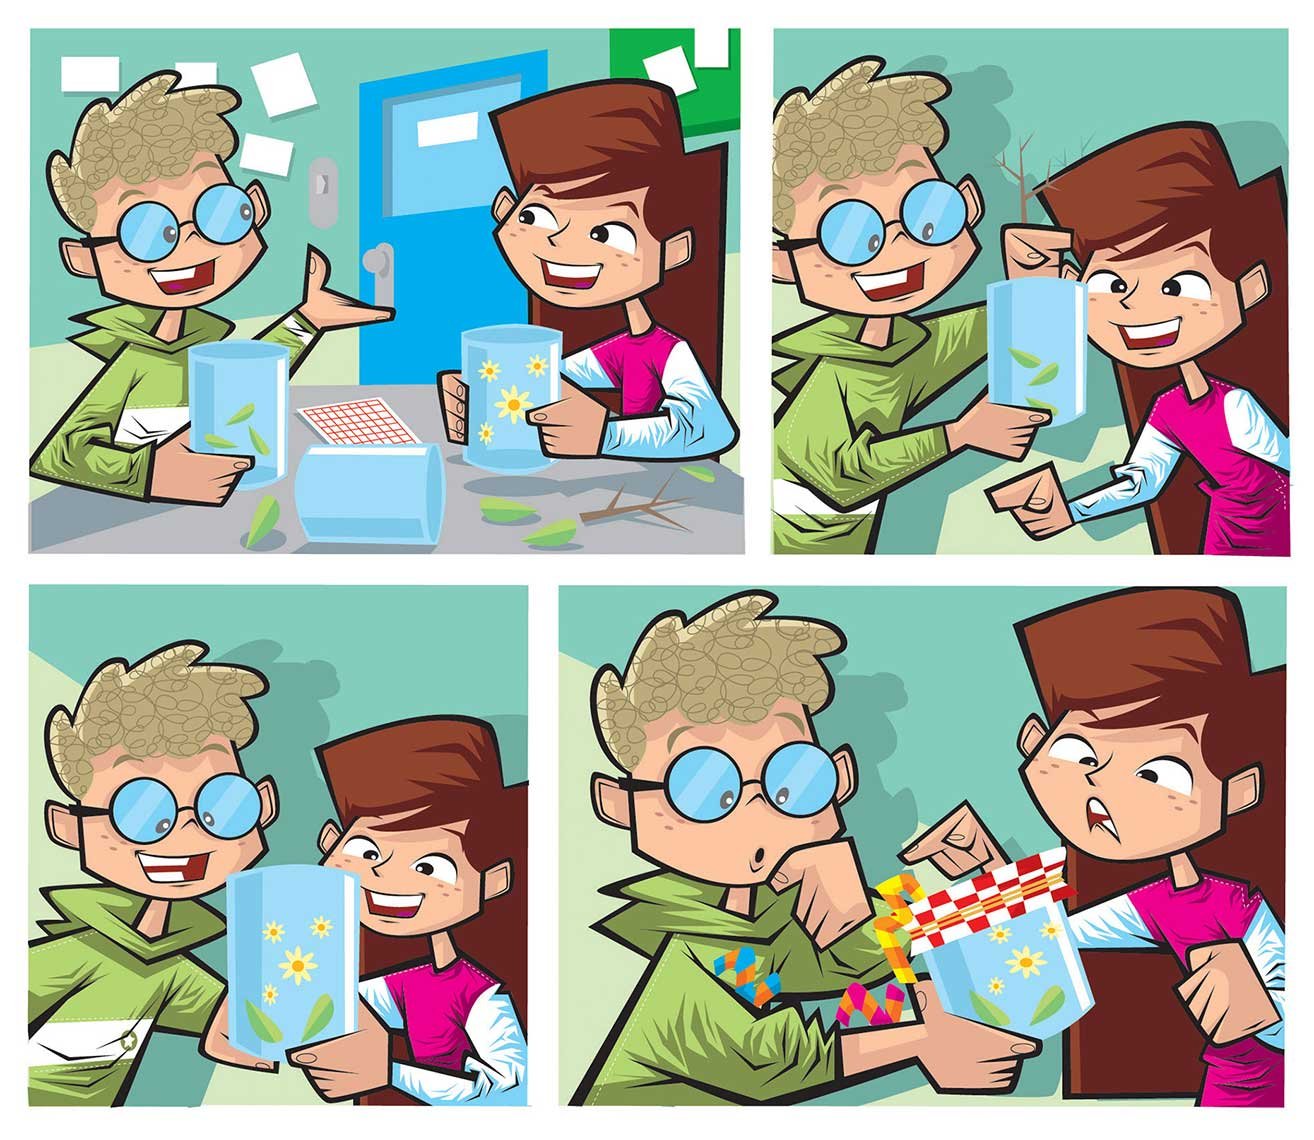 Comic-Book-Frames-bi-speckled-boy-speaking-with-girl-in-schoolroom